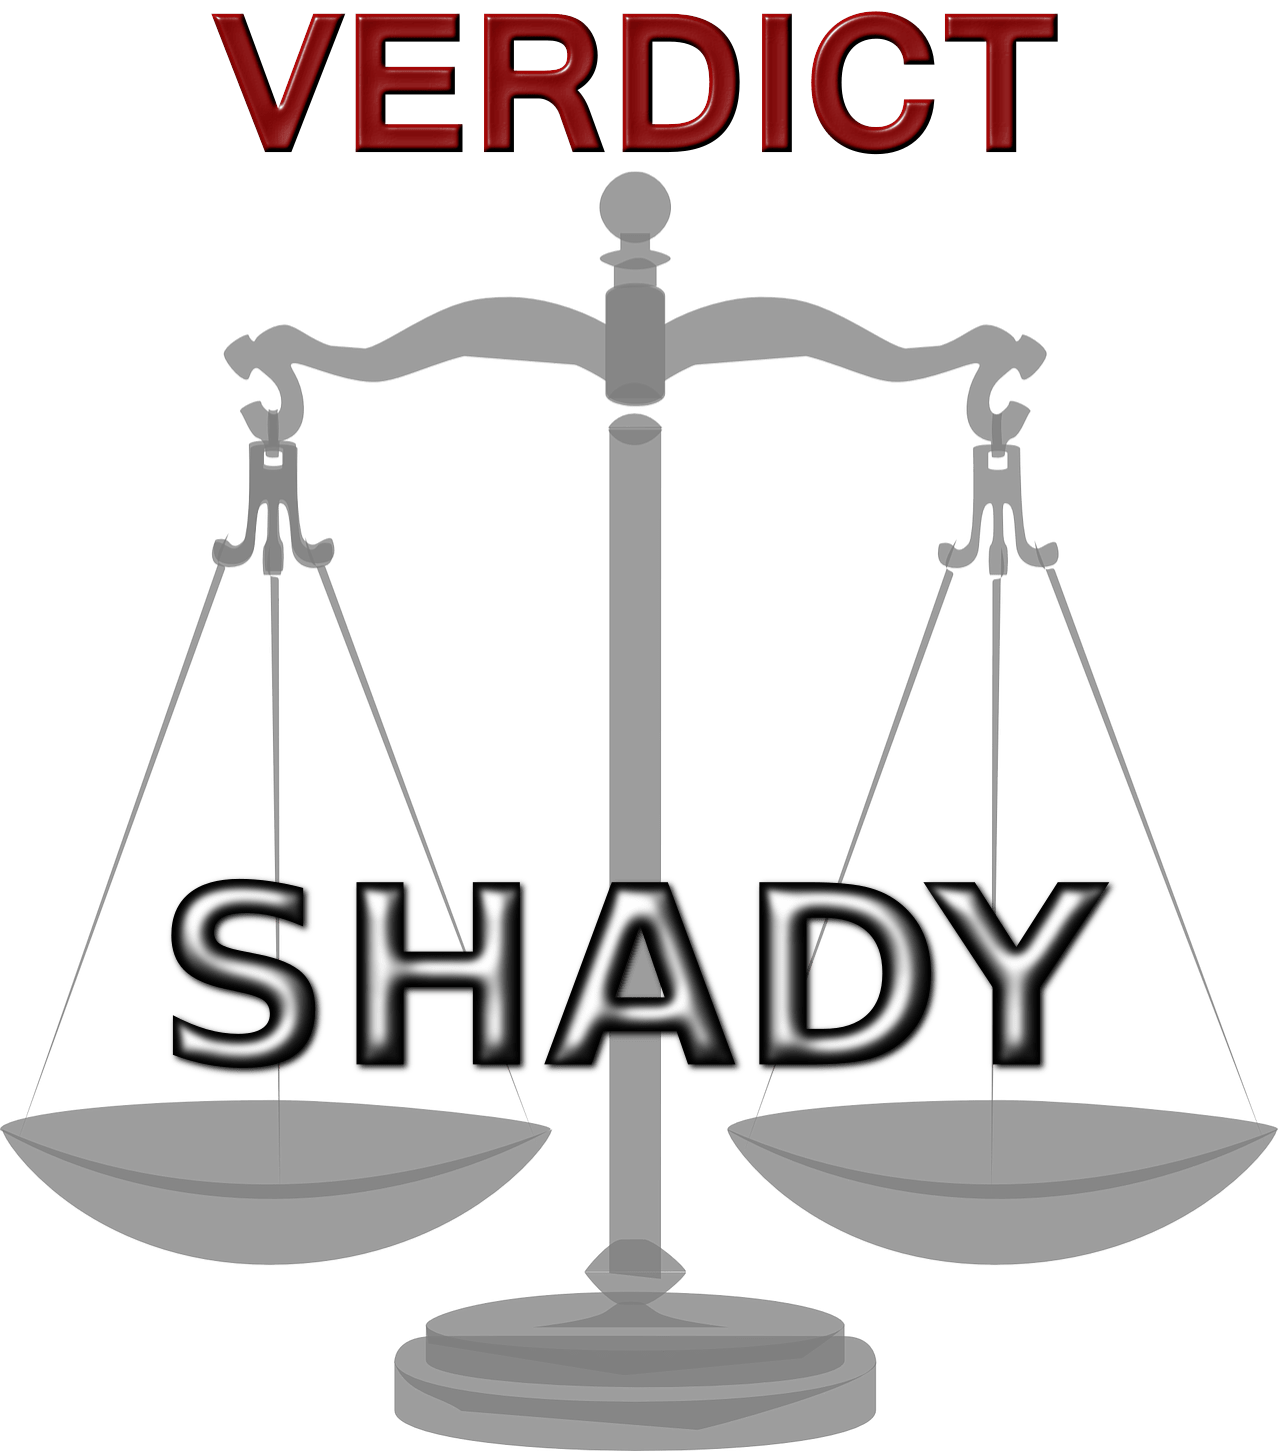 Camfly Verdict Shady